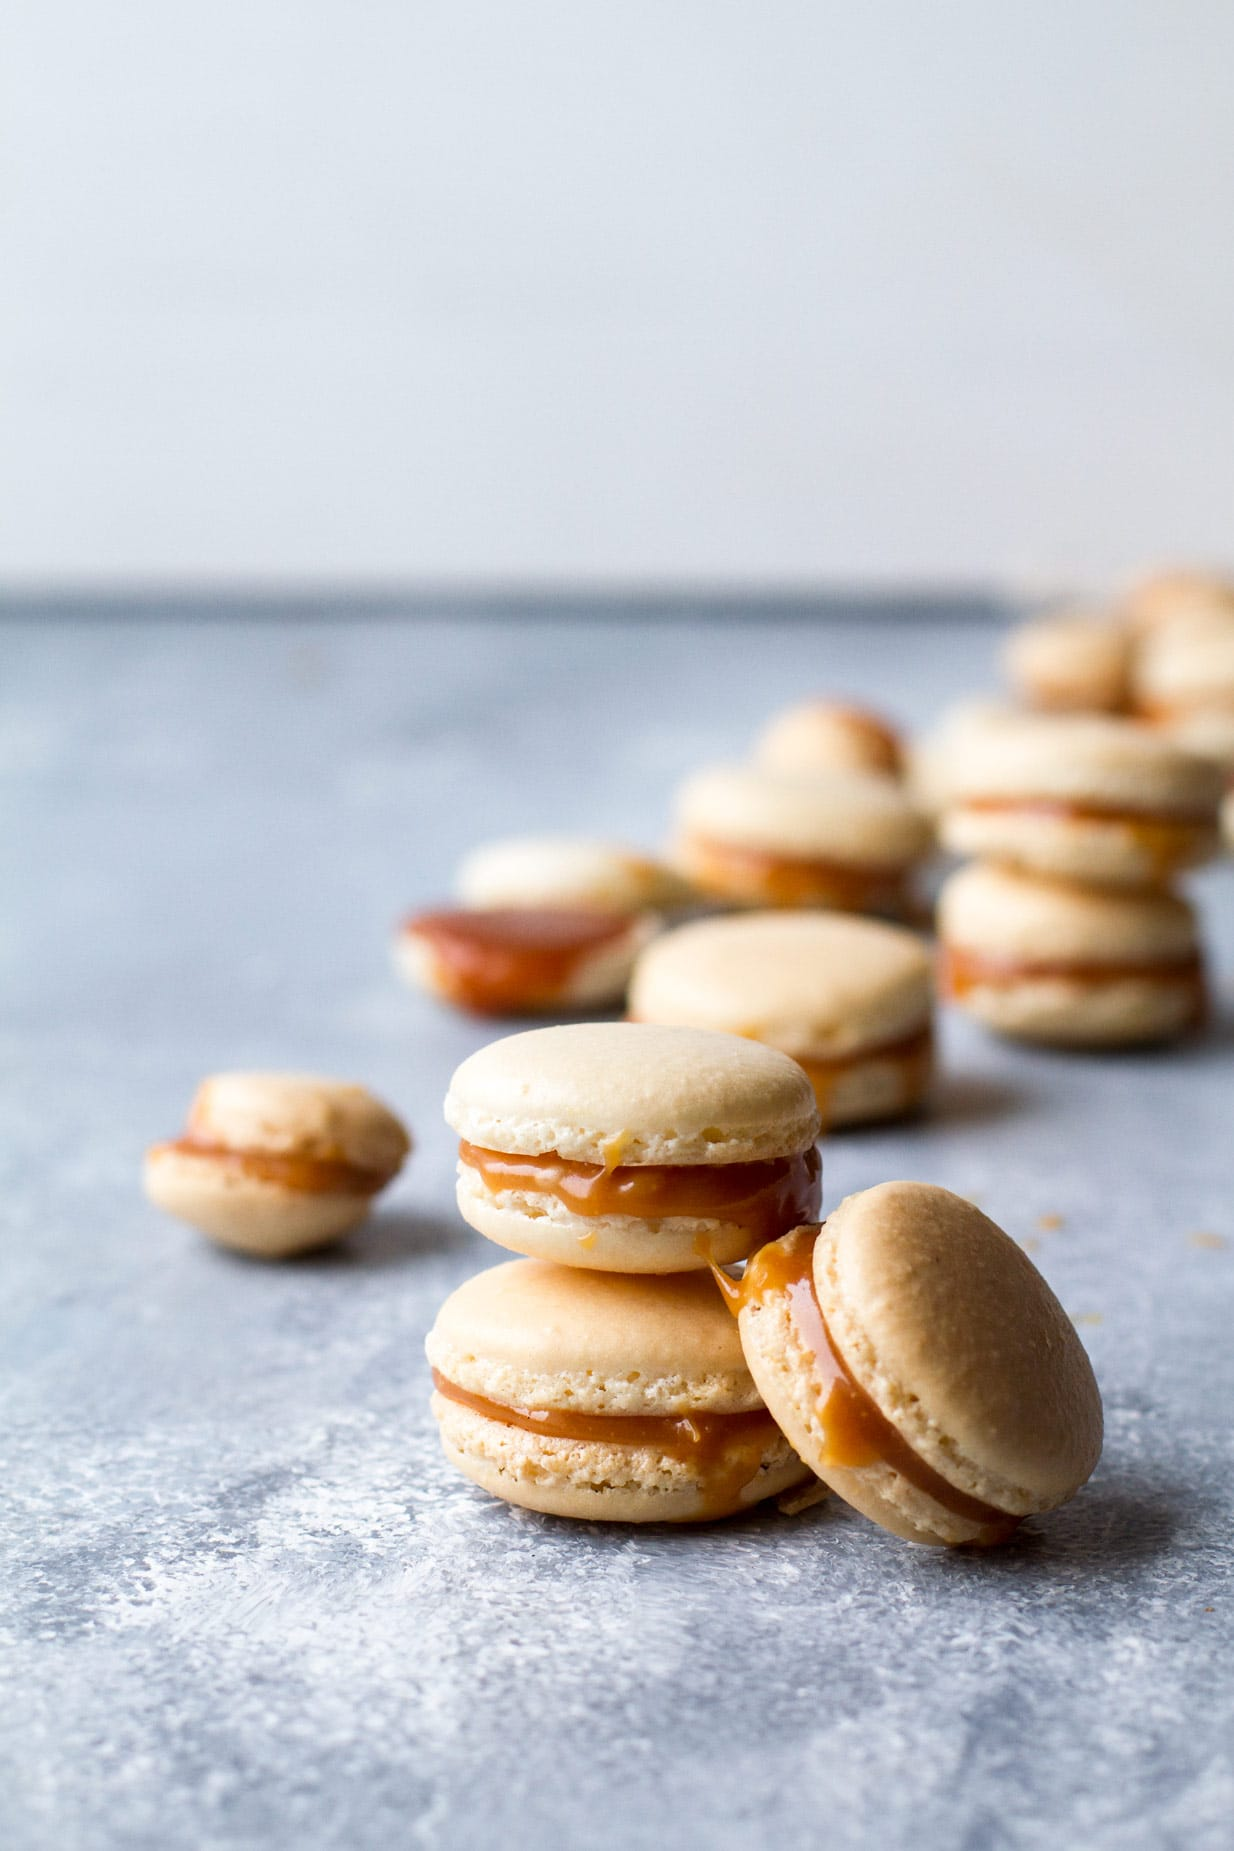 Salted Caramel Macarons with Homemade Caramel Filling stacked on top of each other, many blurry macarons in the background.